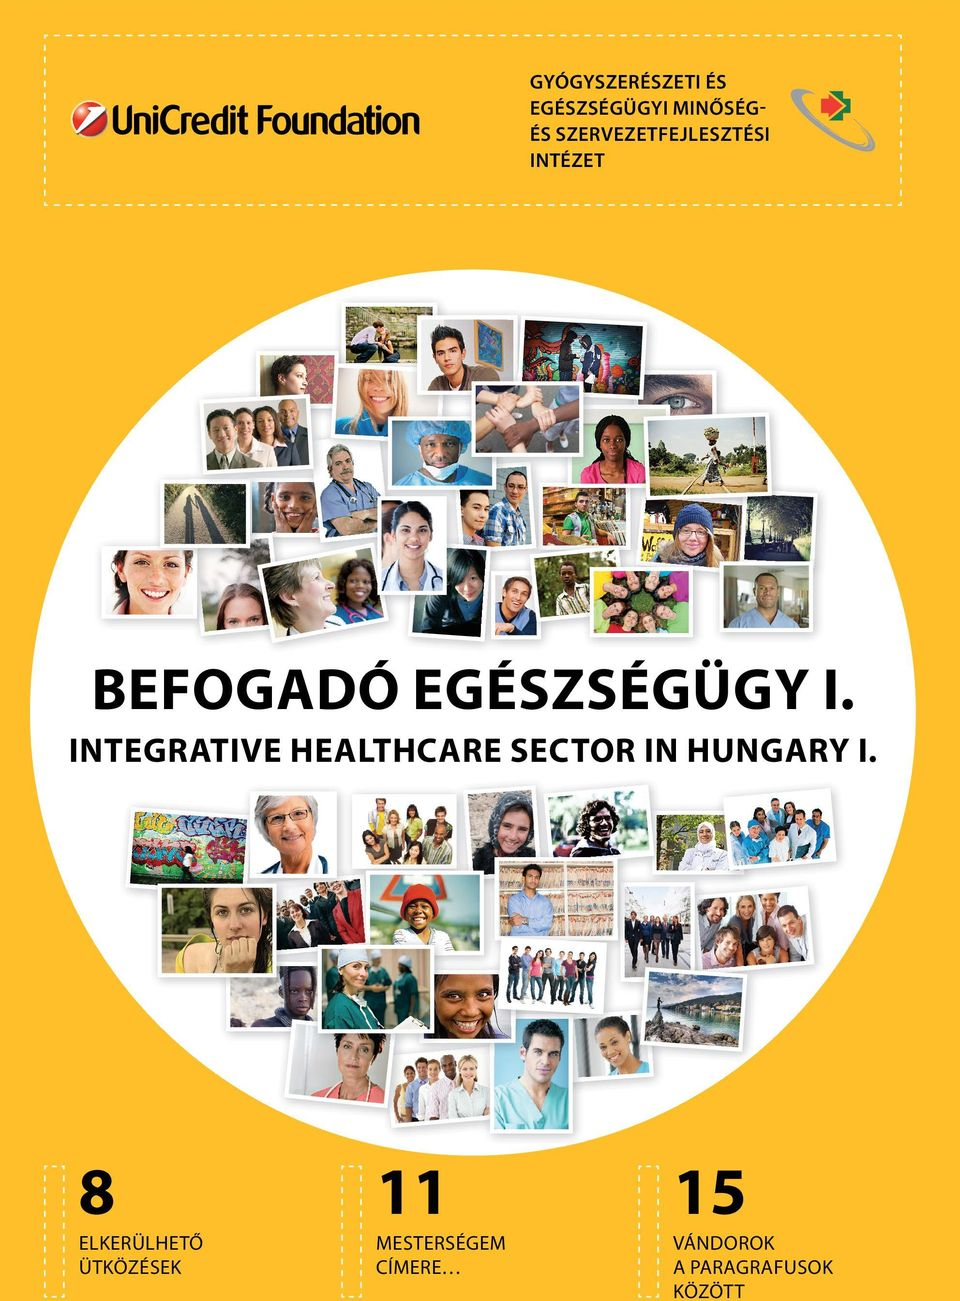 INTEGRATIVE HEALTHCARE SECTOR IN HUNGARY I.